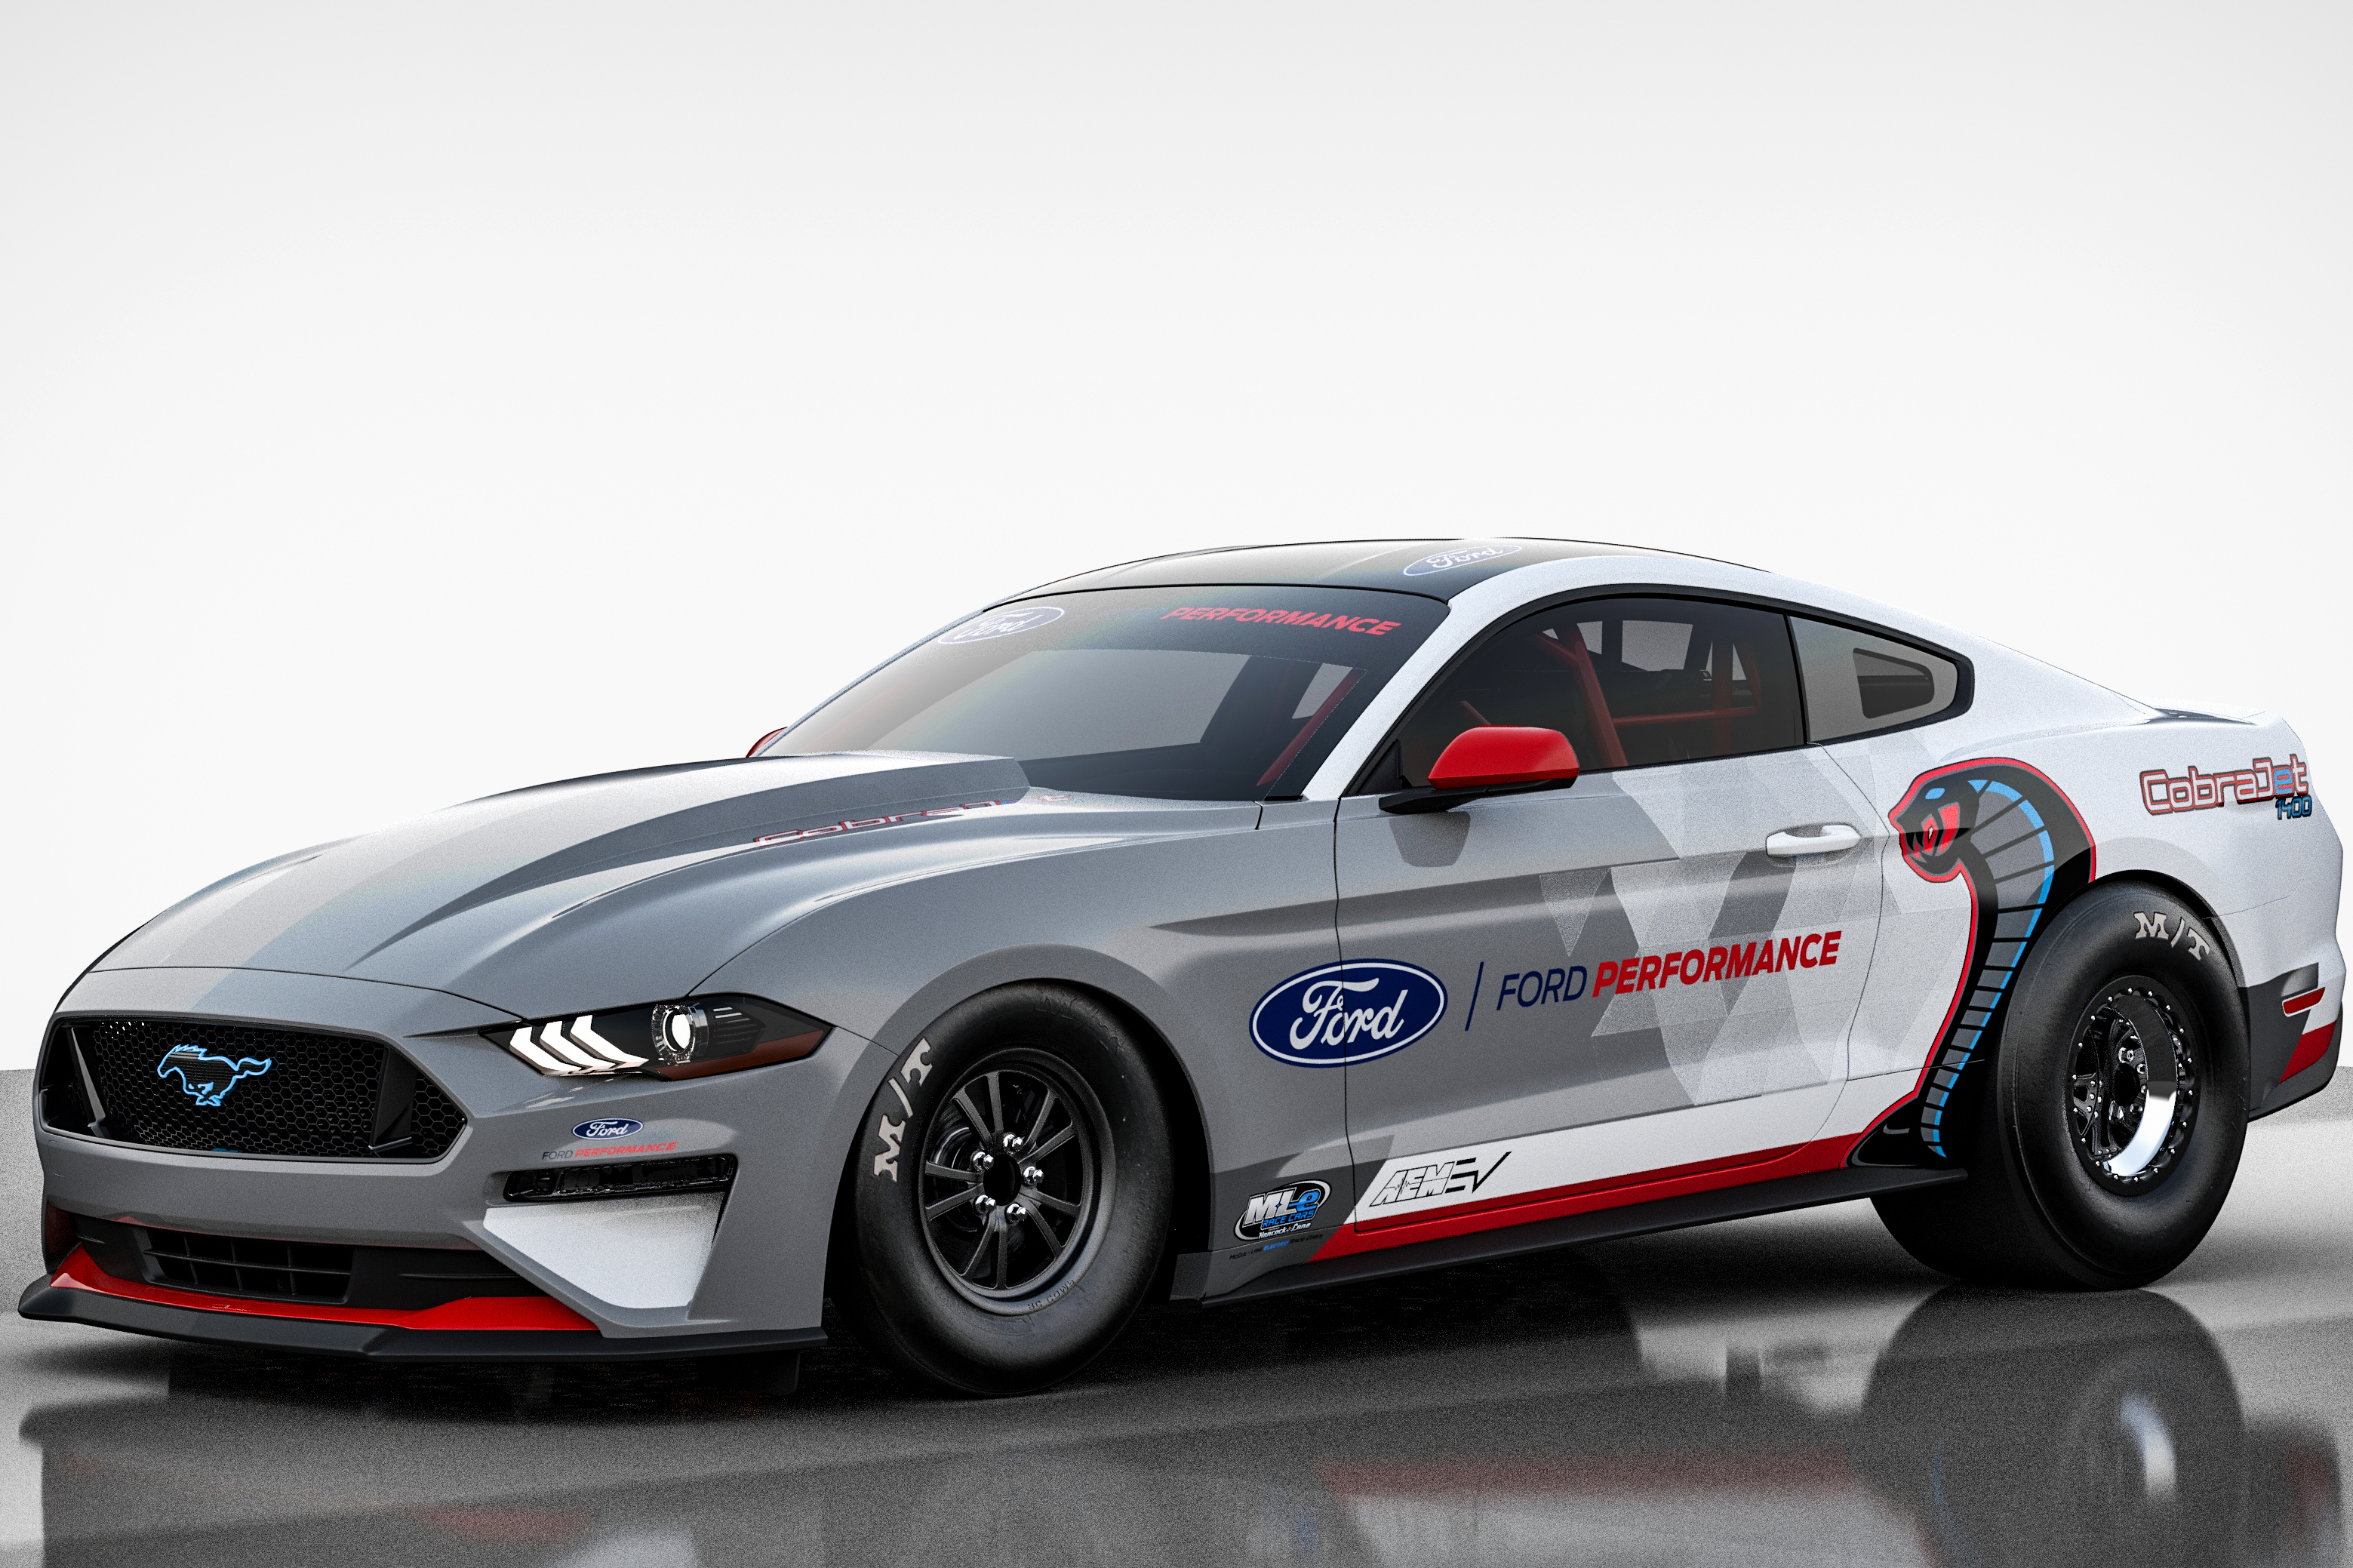 Ford Mustang Cobra Jet 1400 electric-powered drag racing car